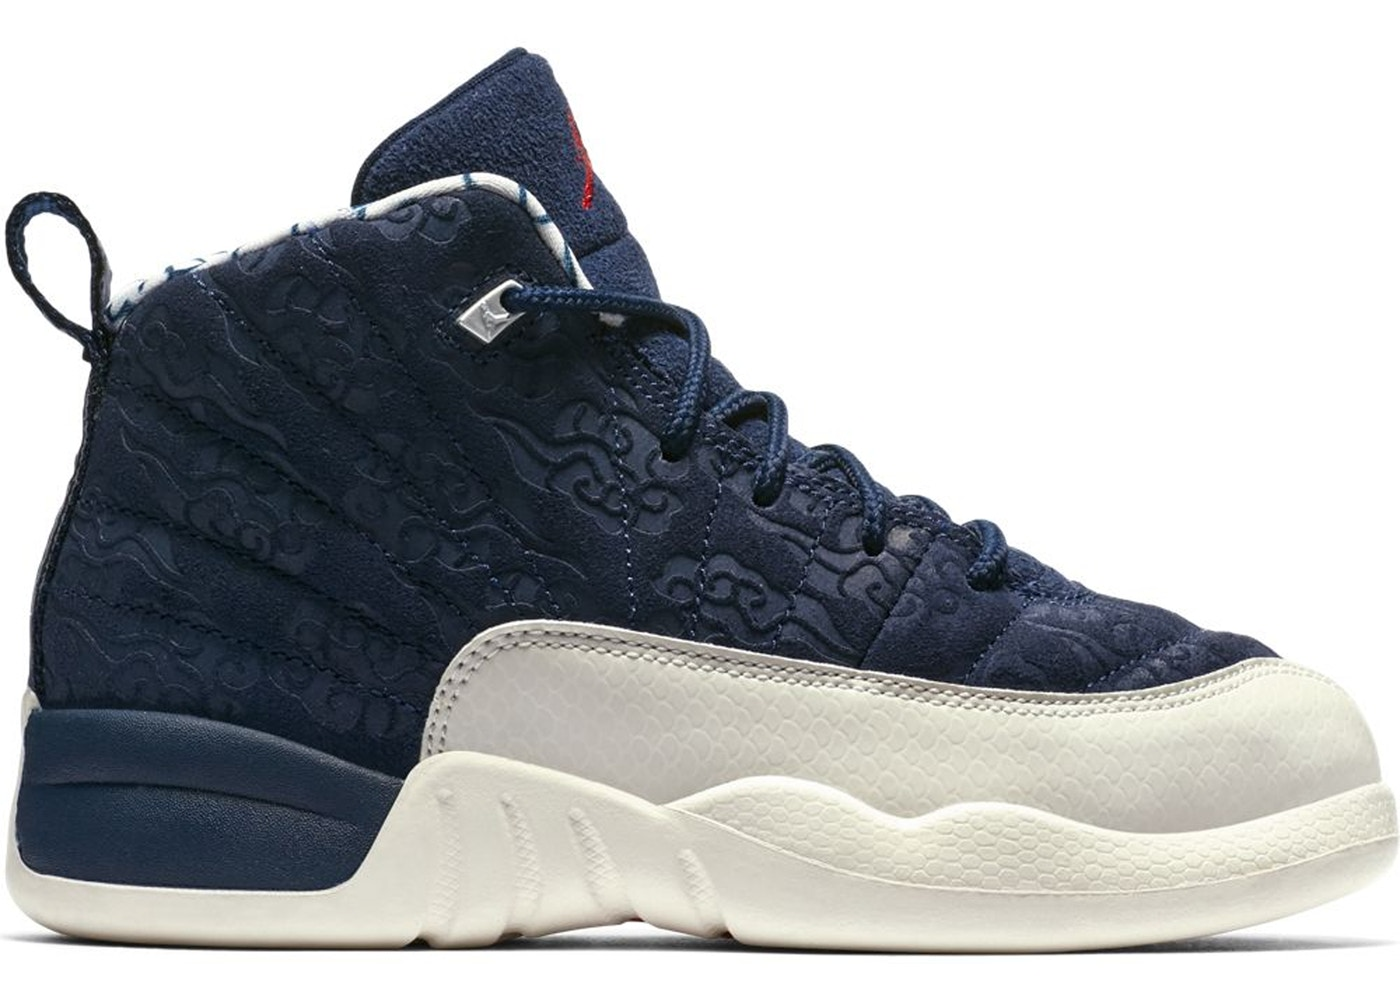 reputable site 6a241 f3861 Air Jordan 12 Shoes - Release Date